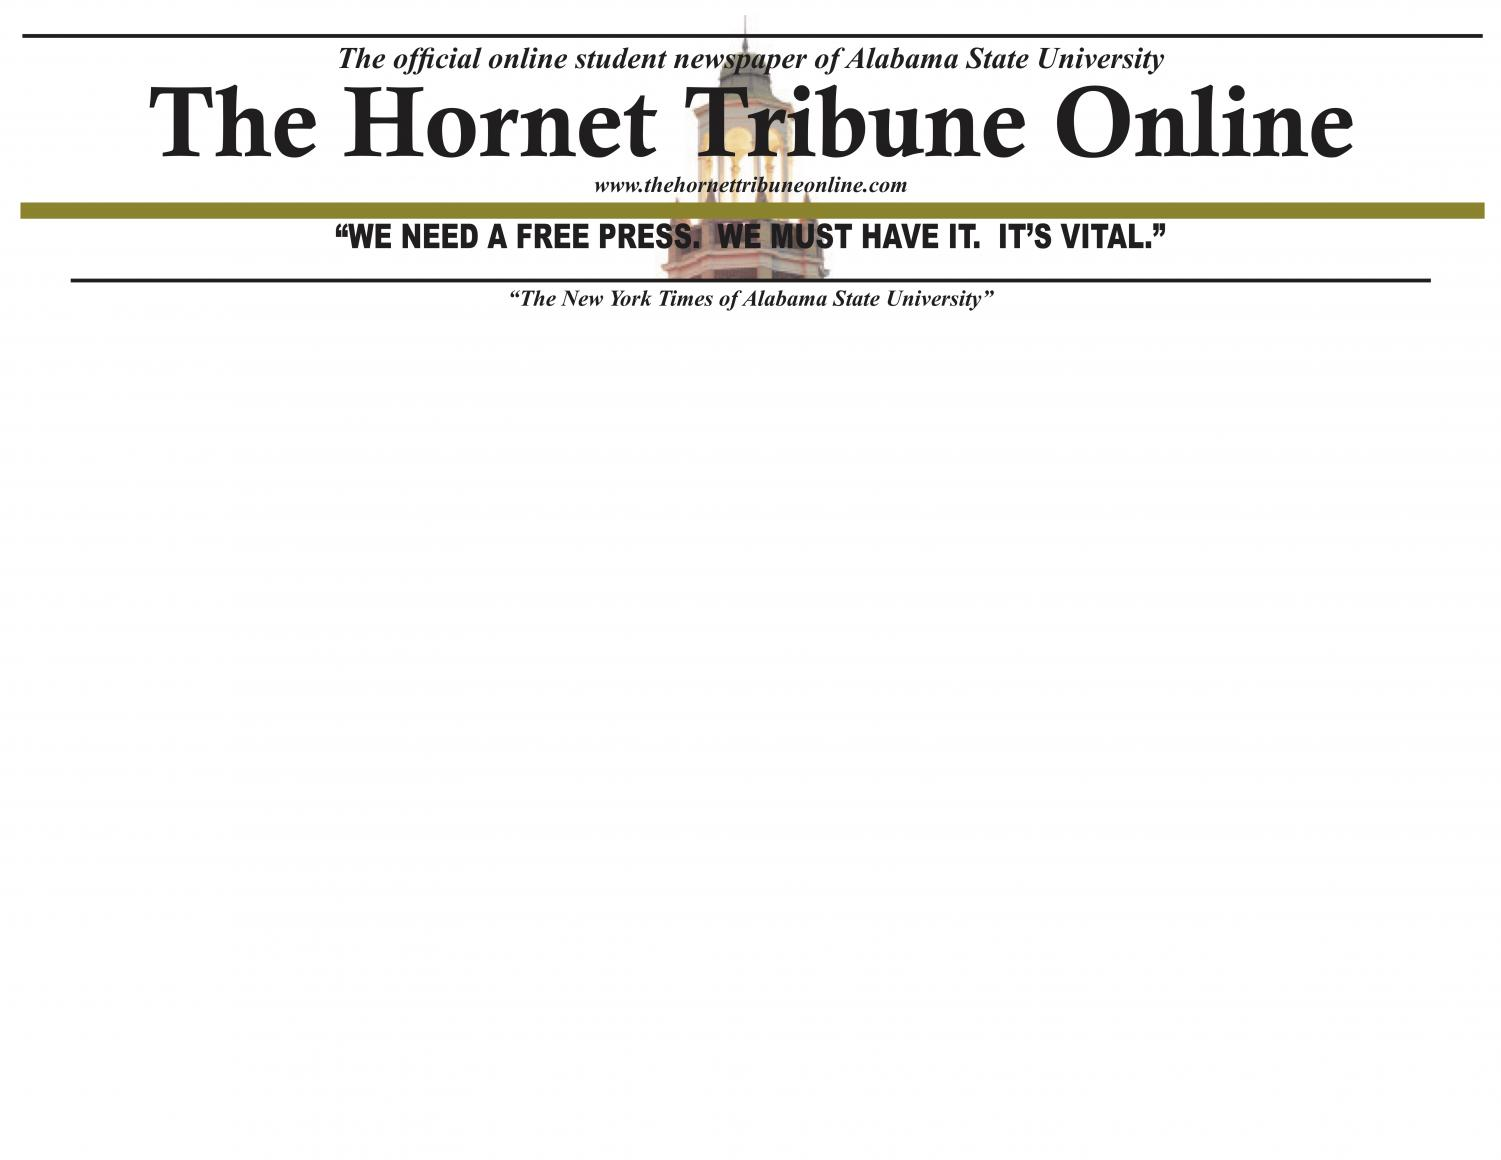 The Student News Site of Alabama State University